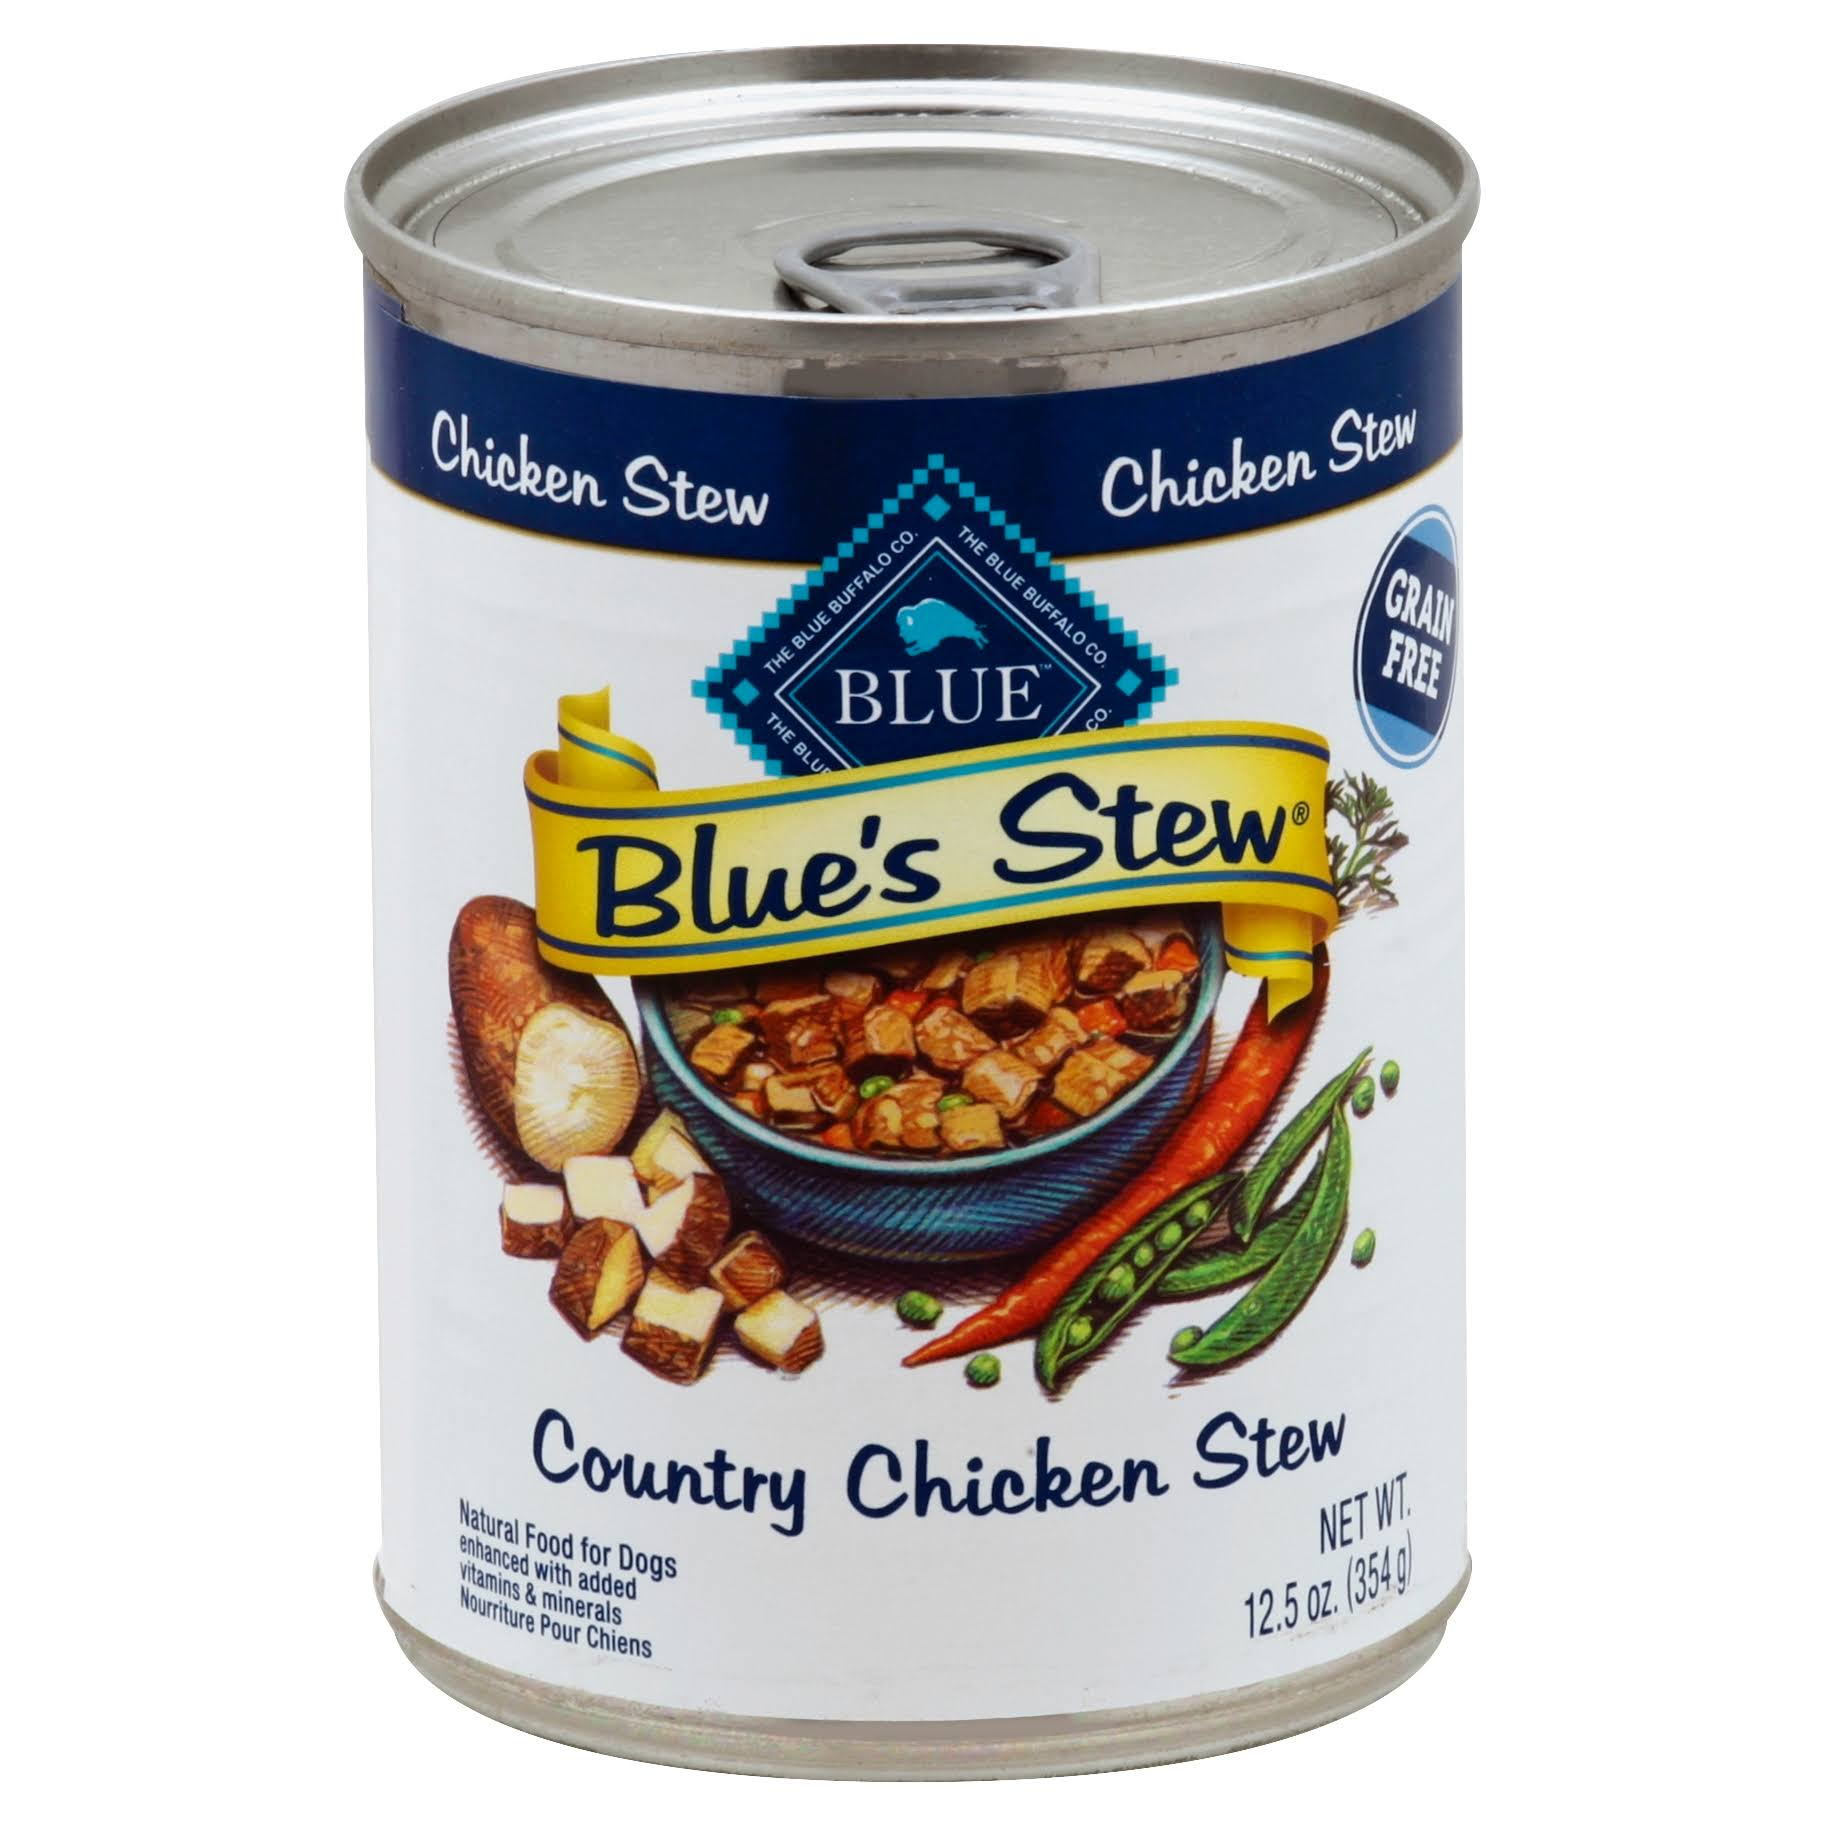 Blue Blue's Stew Natural Dog Food - Country Chicken Stew